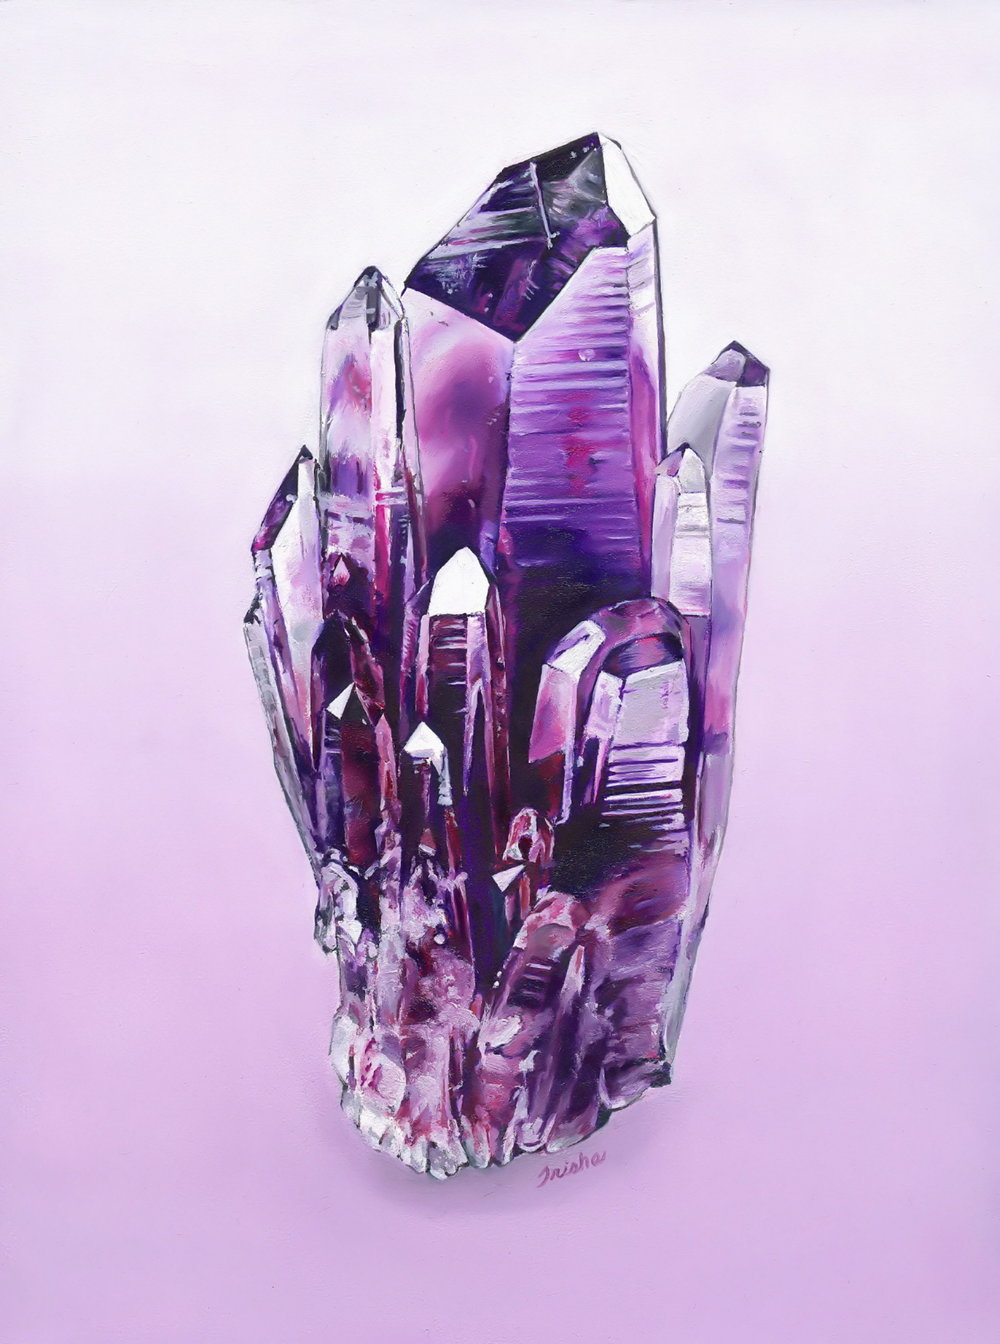 Amethyst (ITEM NO: 009)  Print Size: 8x10 inches   $12.50 Wholesale at 50% off  $25 RRP